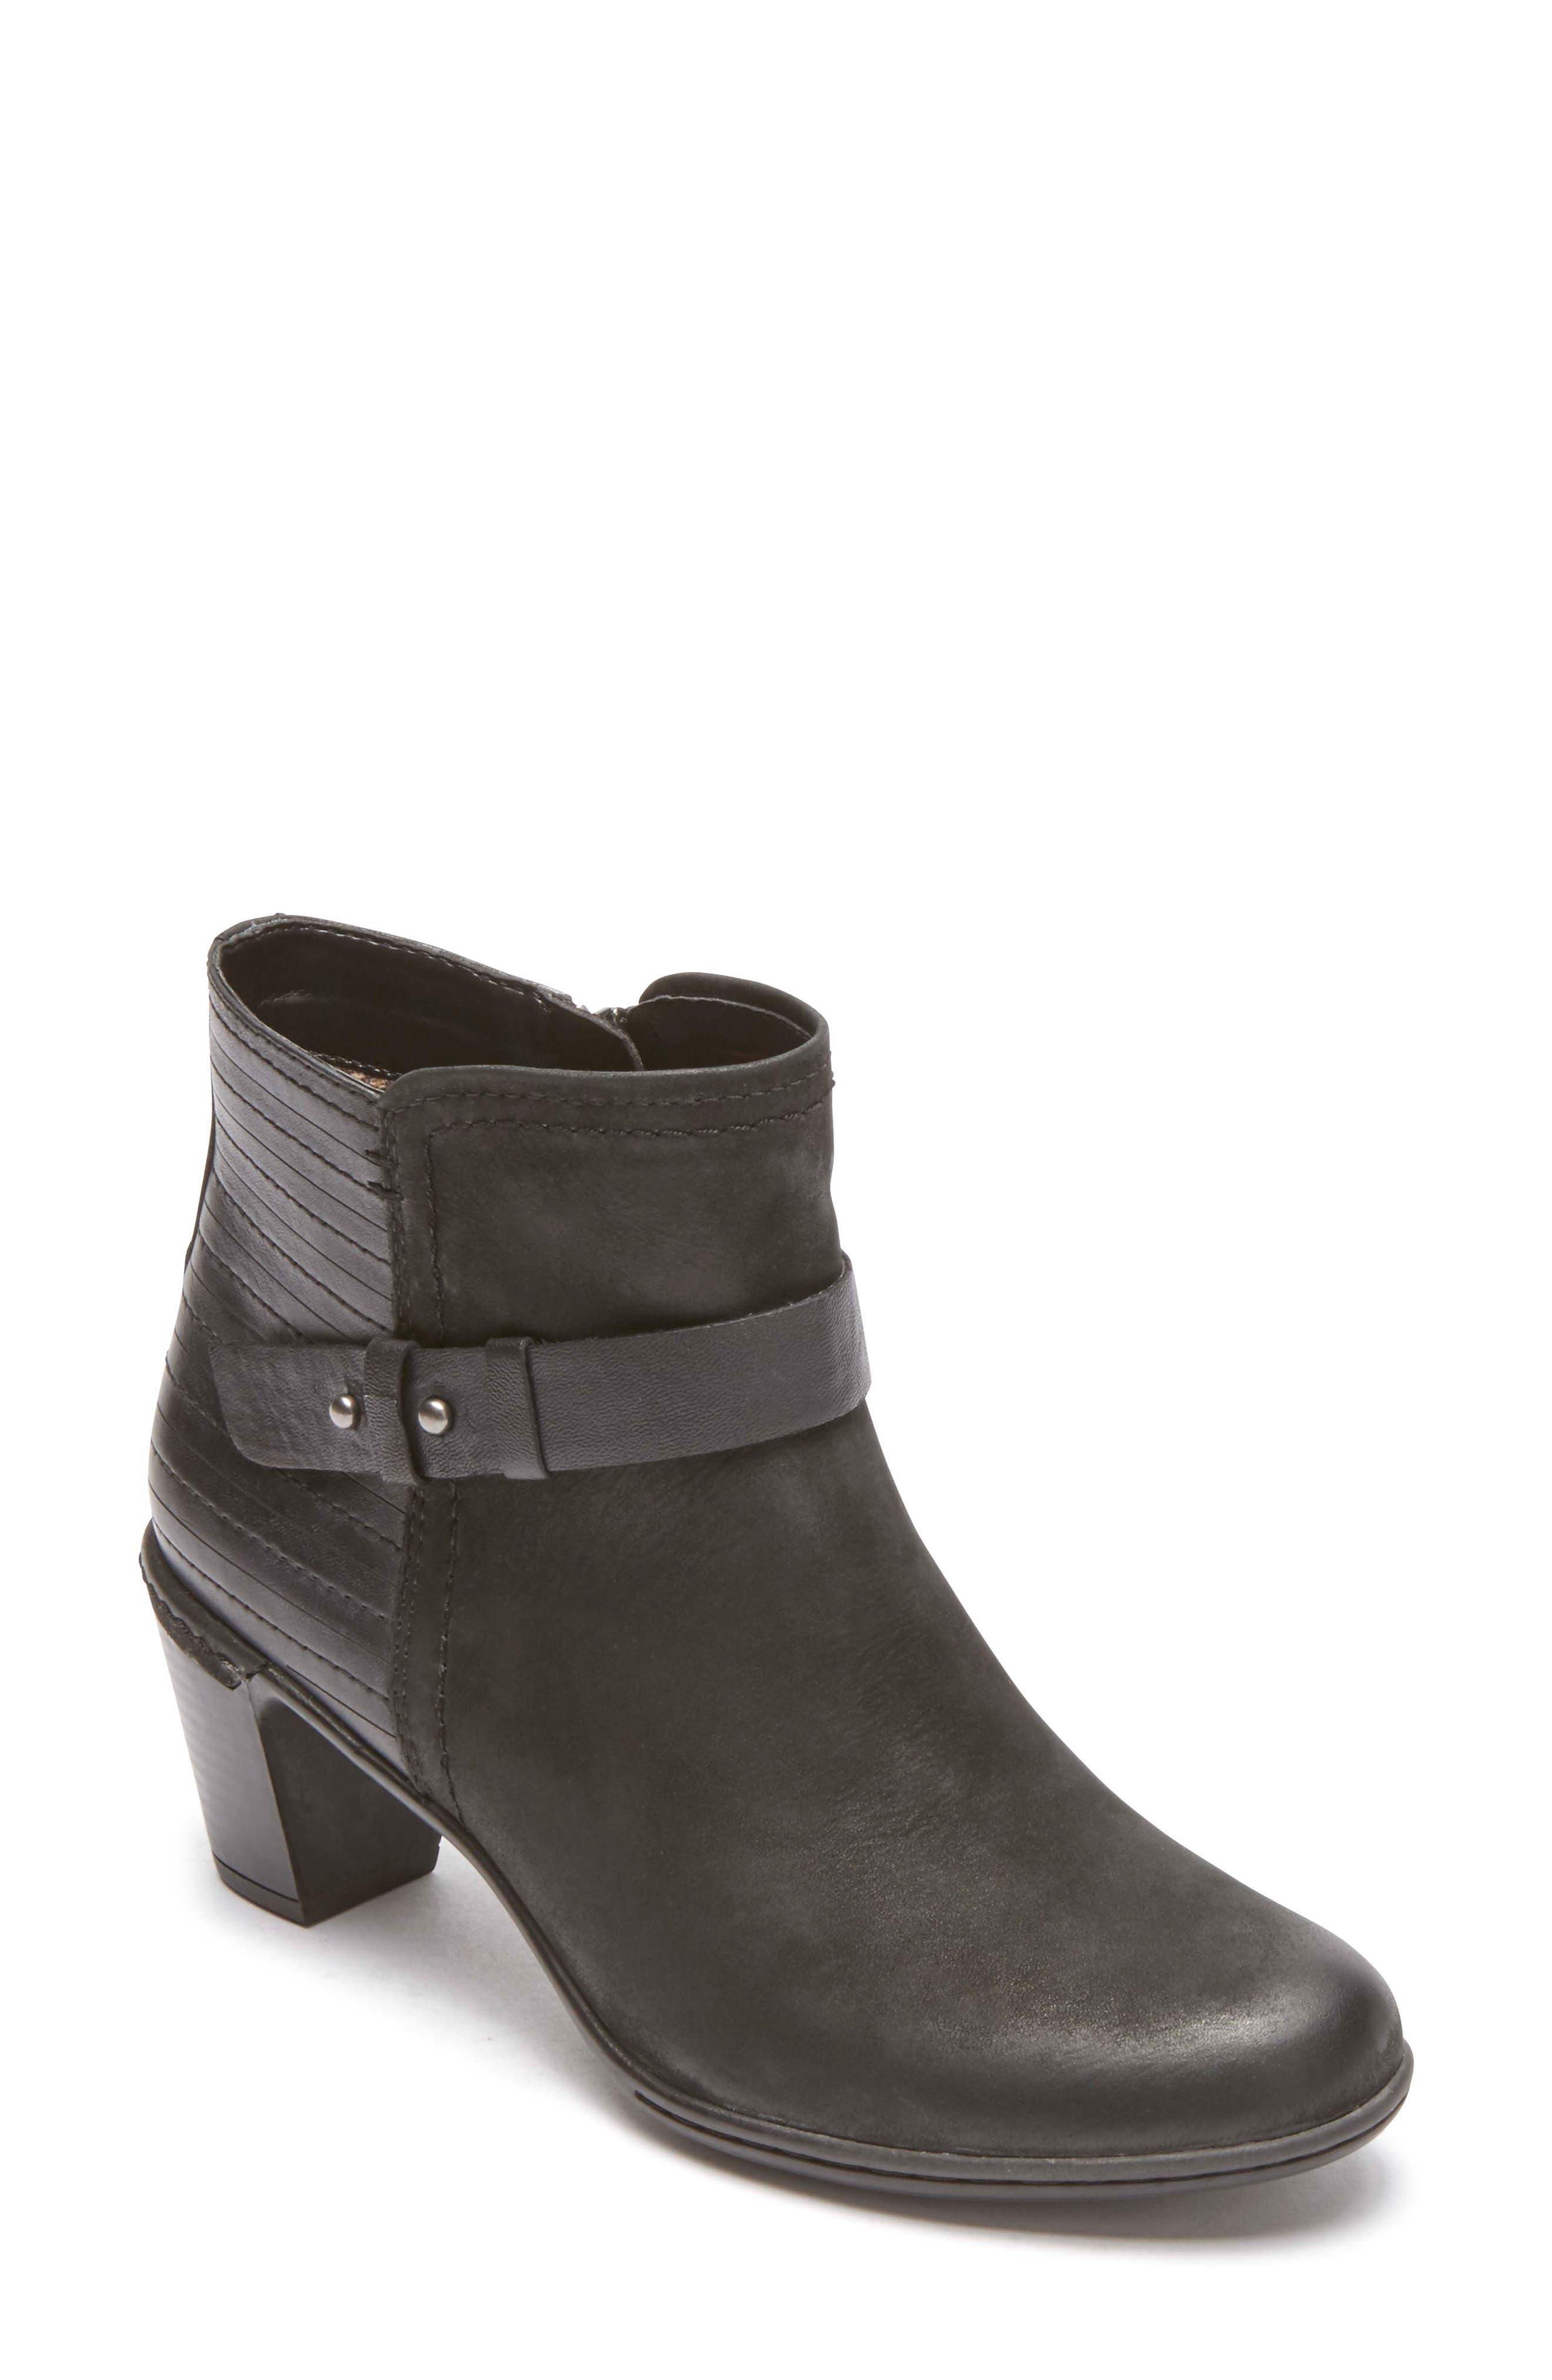 Main Image - Rockport Cobb Hill Rashel Buckle Bootie (Women)